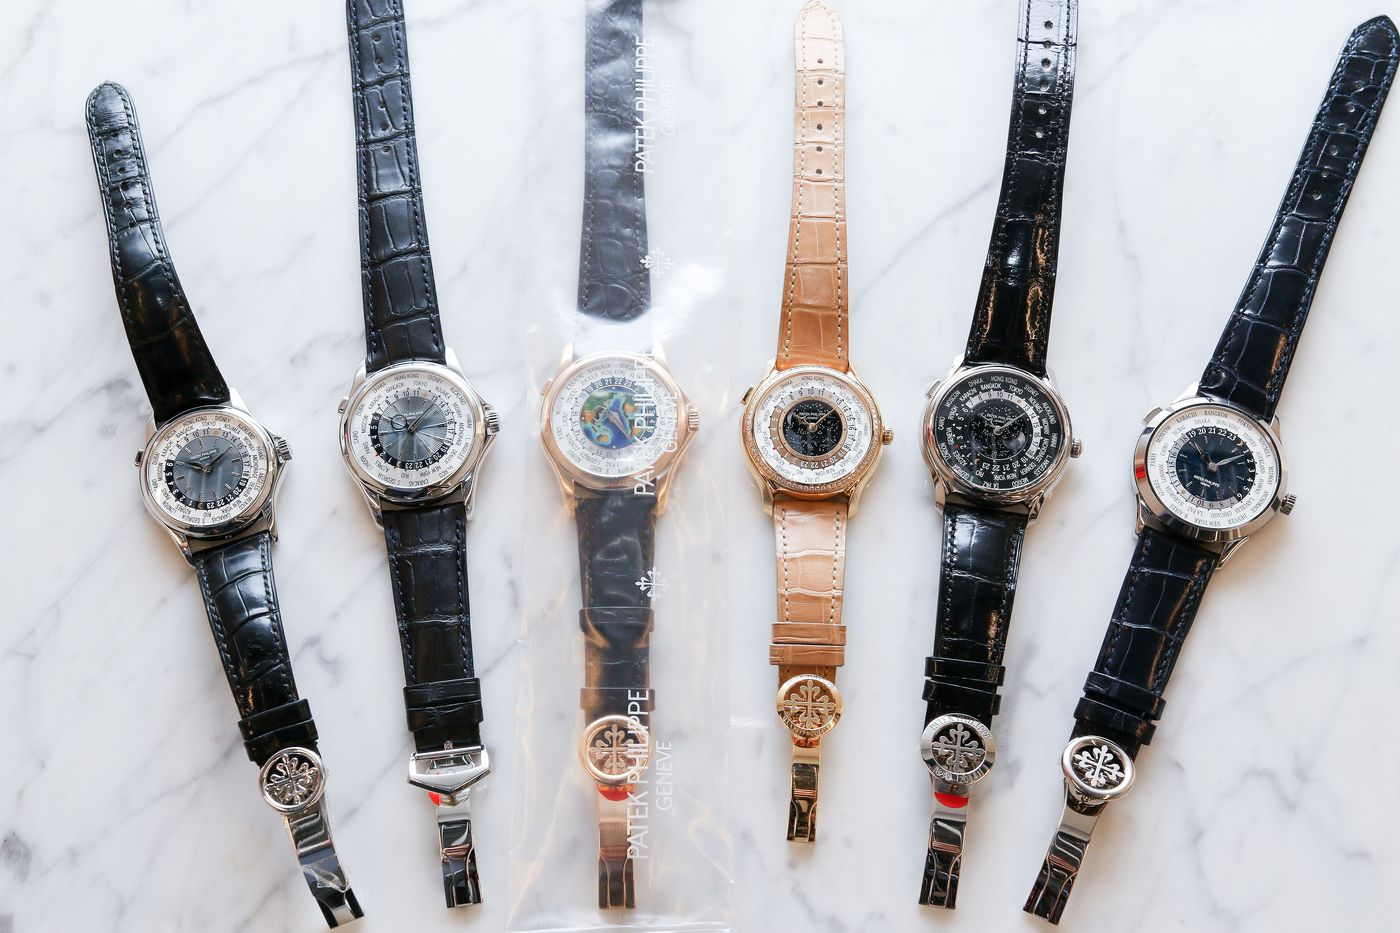 The upcoming Hong Kong Watch Auction: X is lucky to have all the references of Patek Philippe world time wristwatches which have been launched since 2000; which allows us to create a brief guide to modern Patek Philippe world time watches in chronological order.